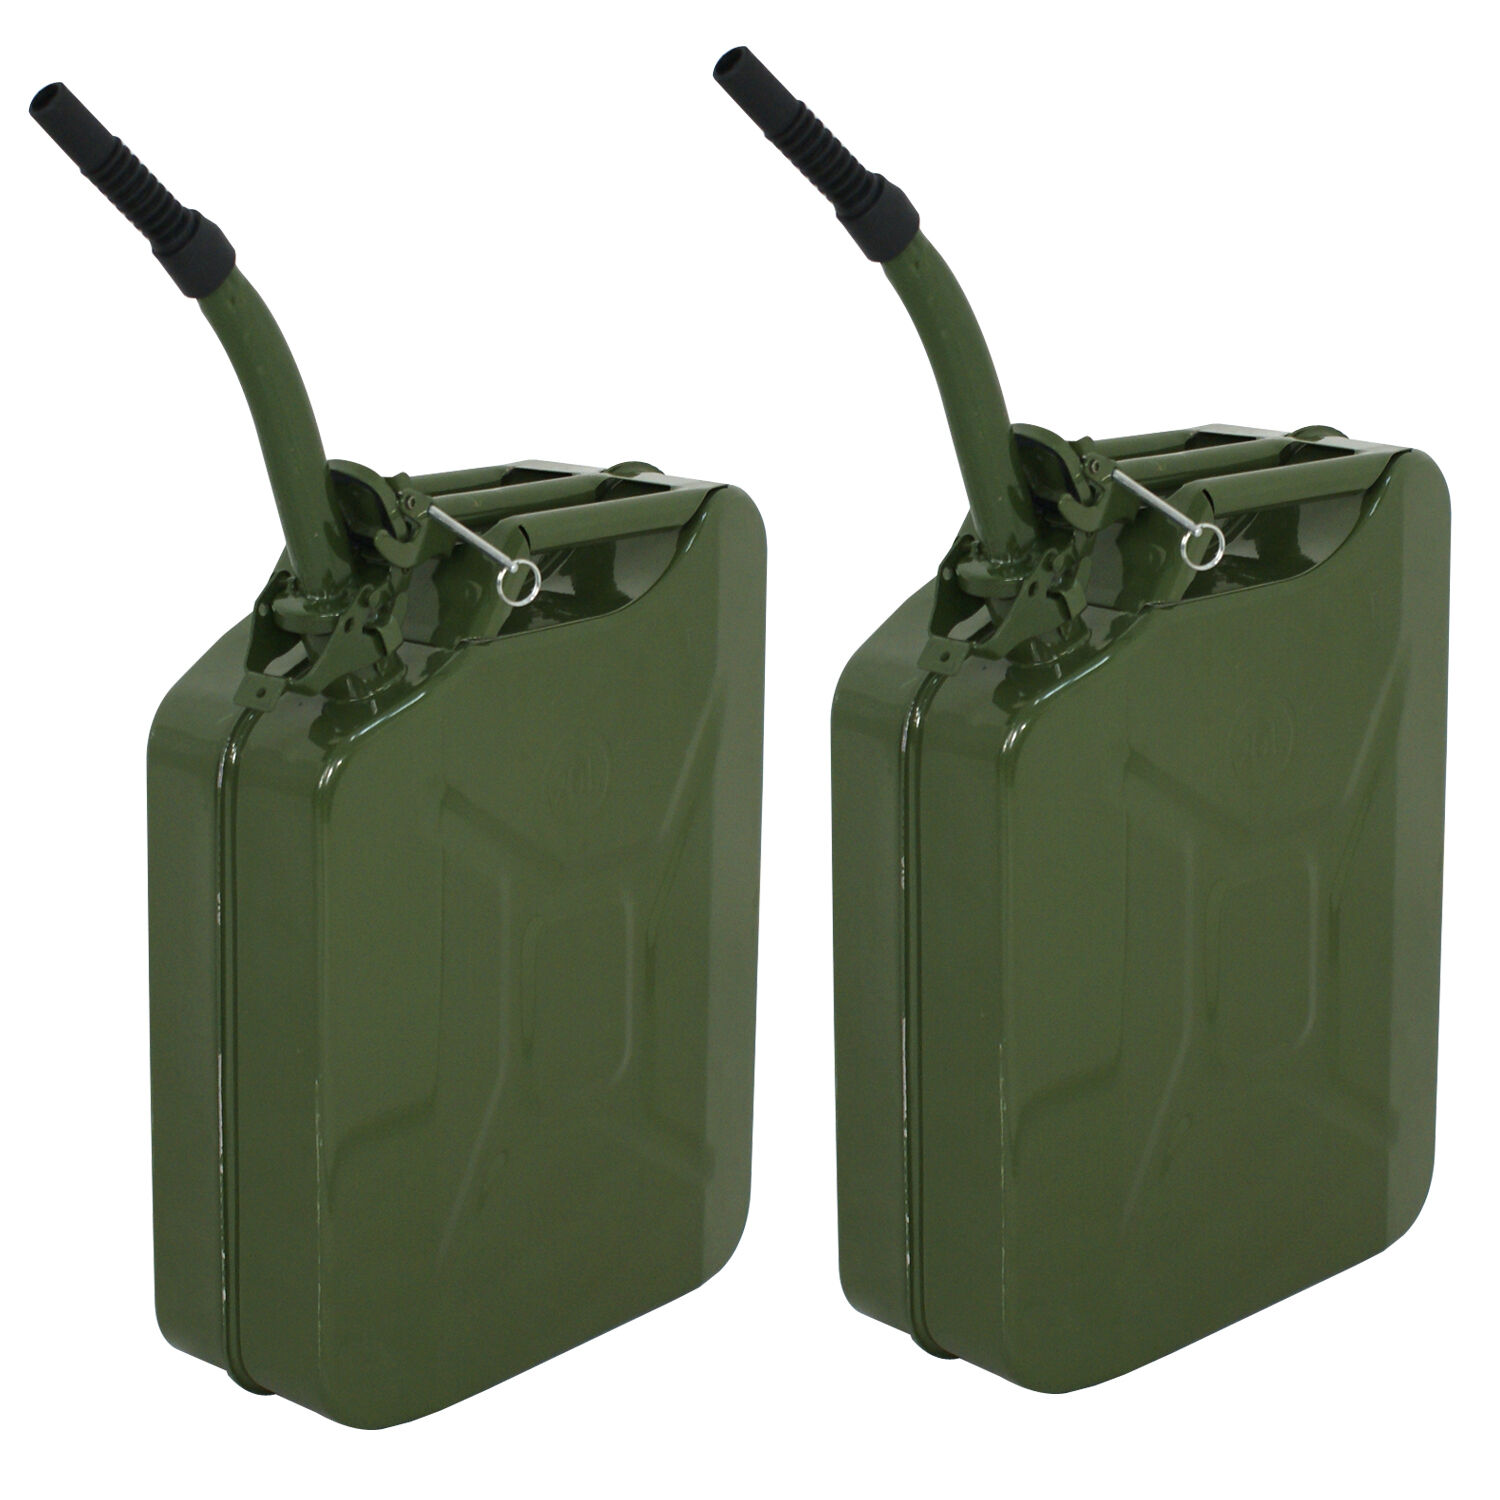 2X Gas Gasoline Jerry Can Fuel Army Army Backup Metal Steel Tank 5 Gallon 20L Business & Industrial